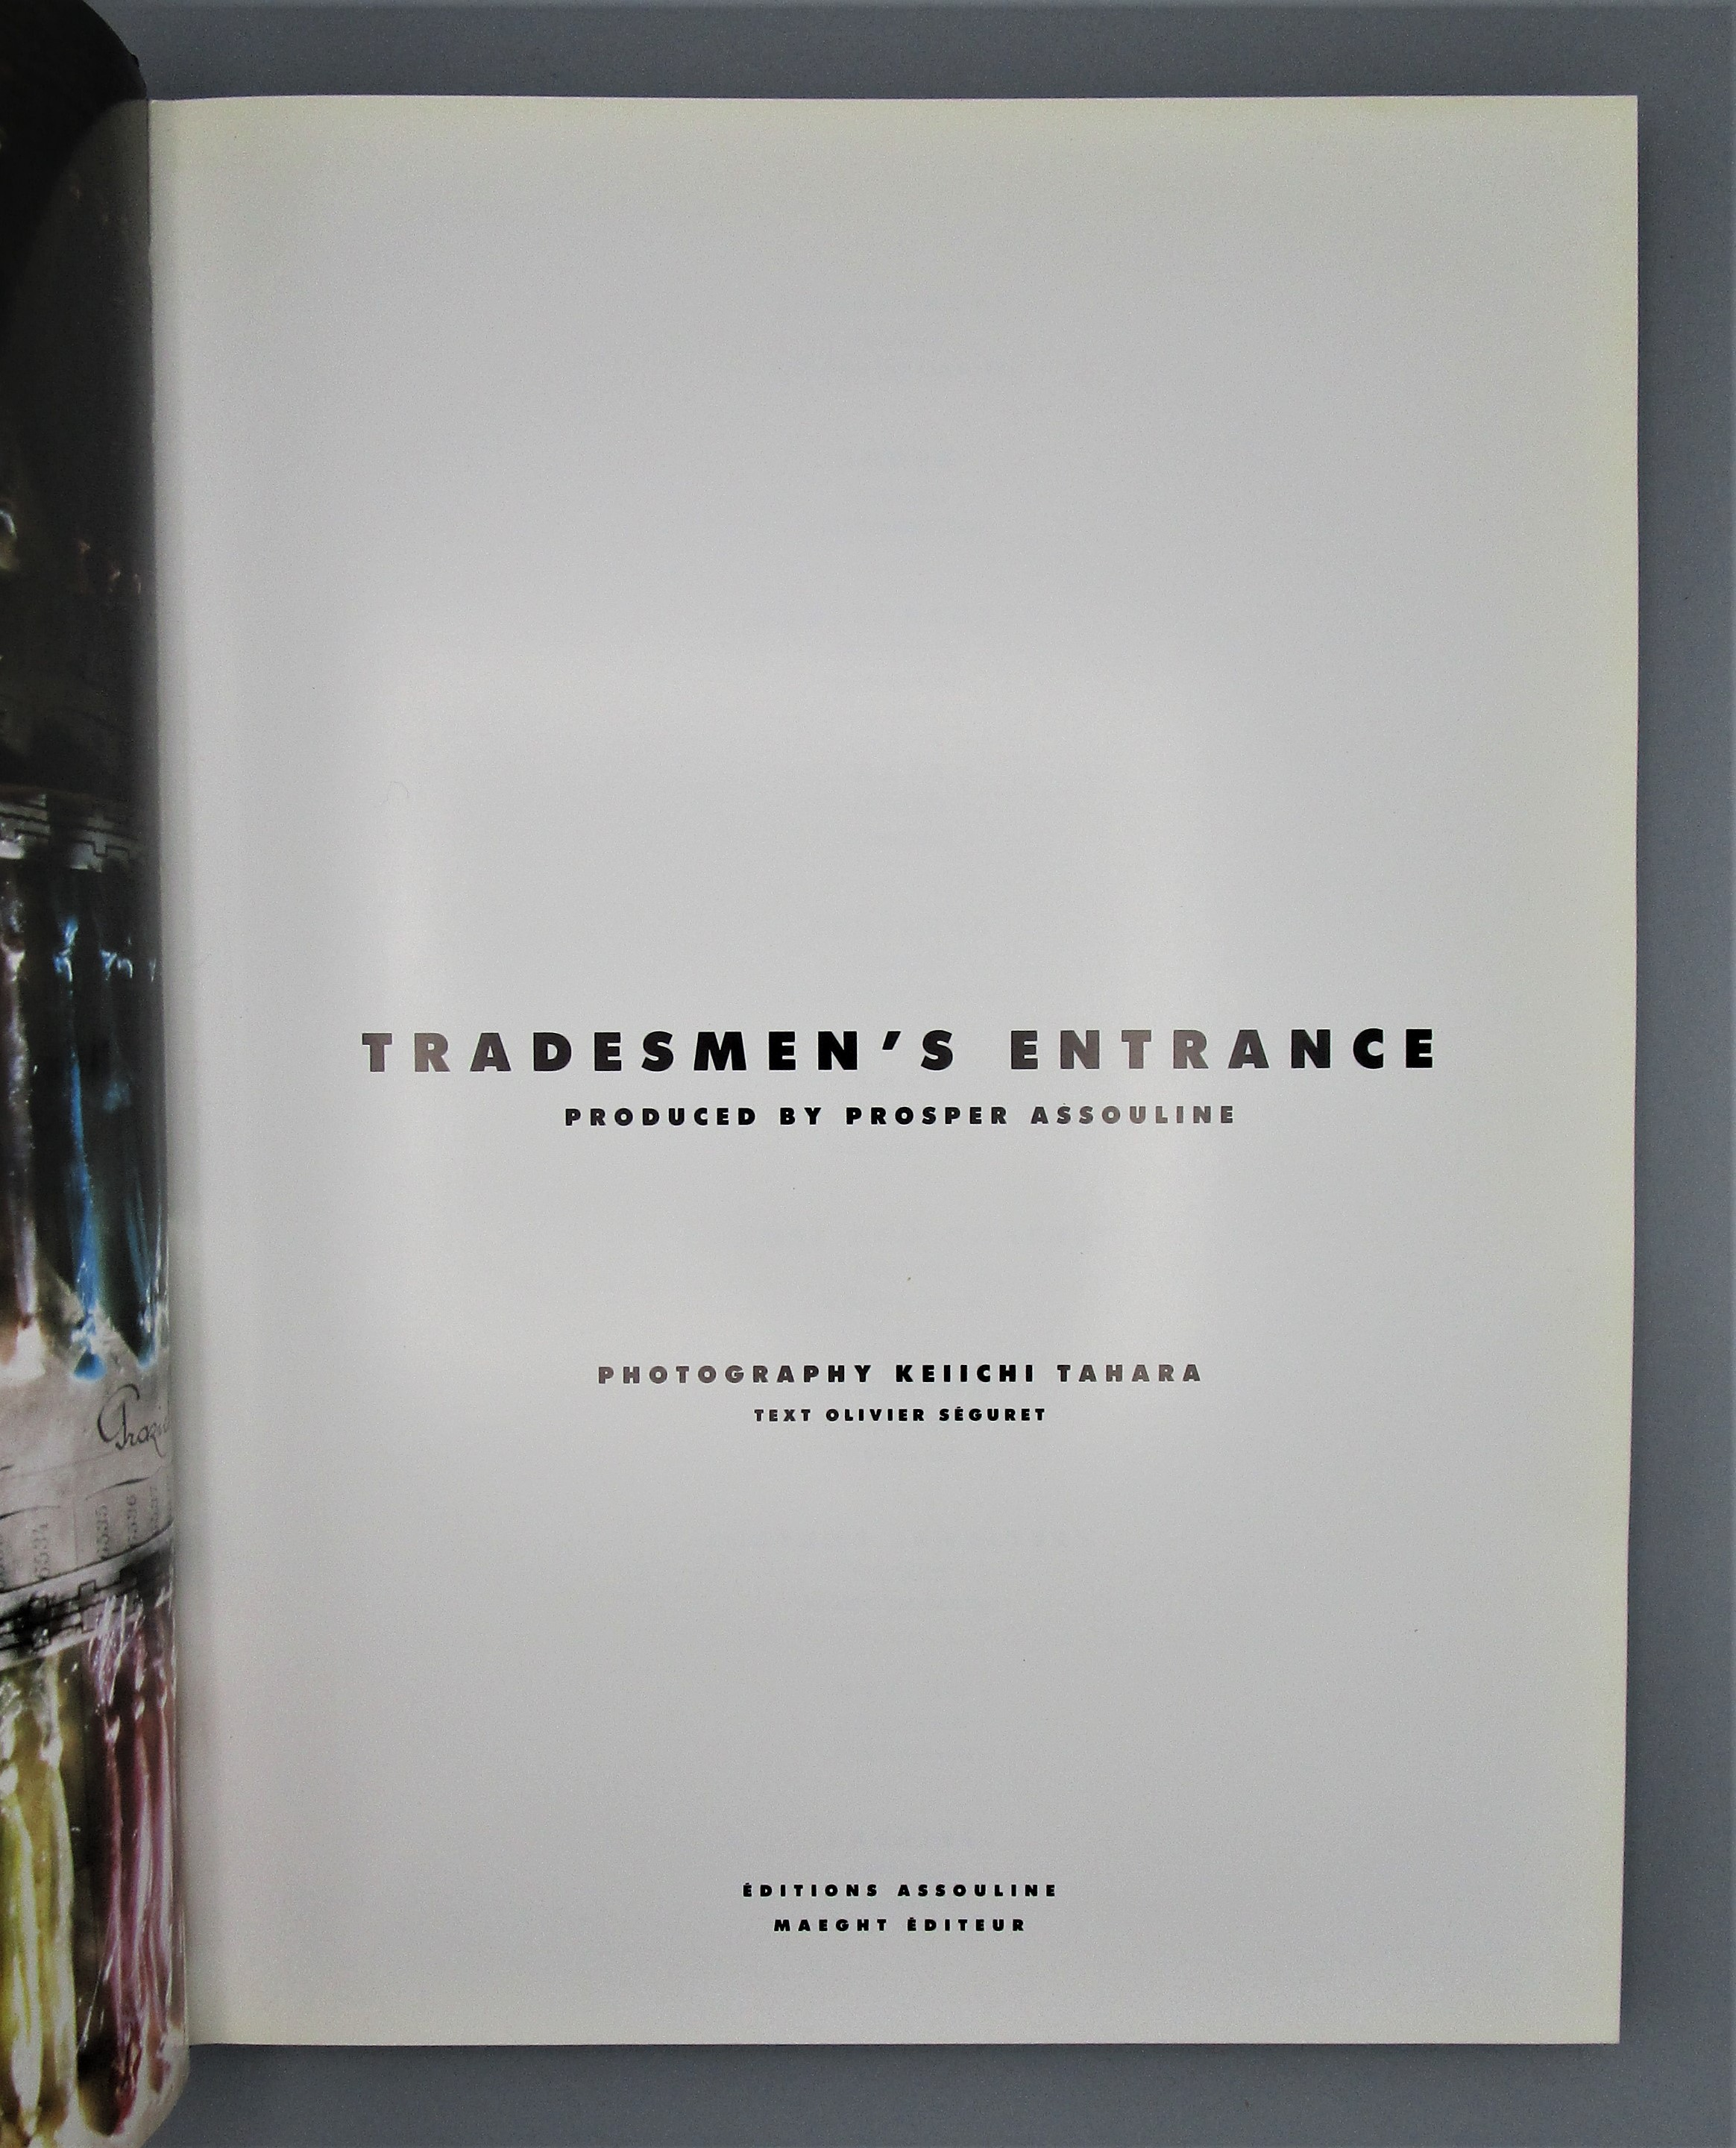 HAUTE COUTURE: TRADESMAN'S ENTRANCE, by Olivier Seguret - 1990